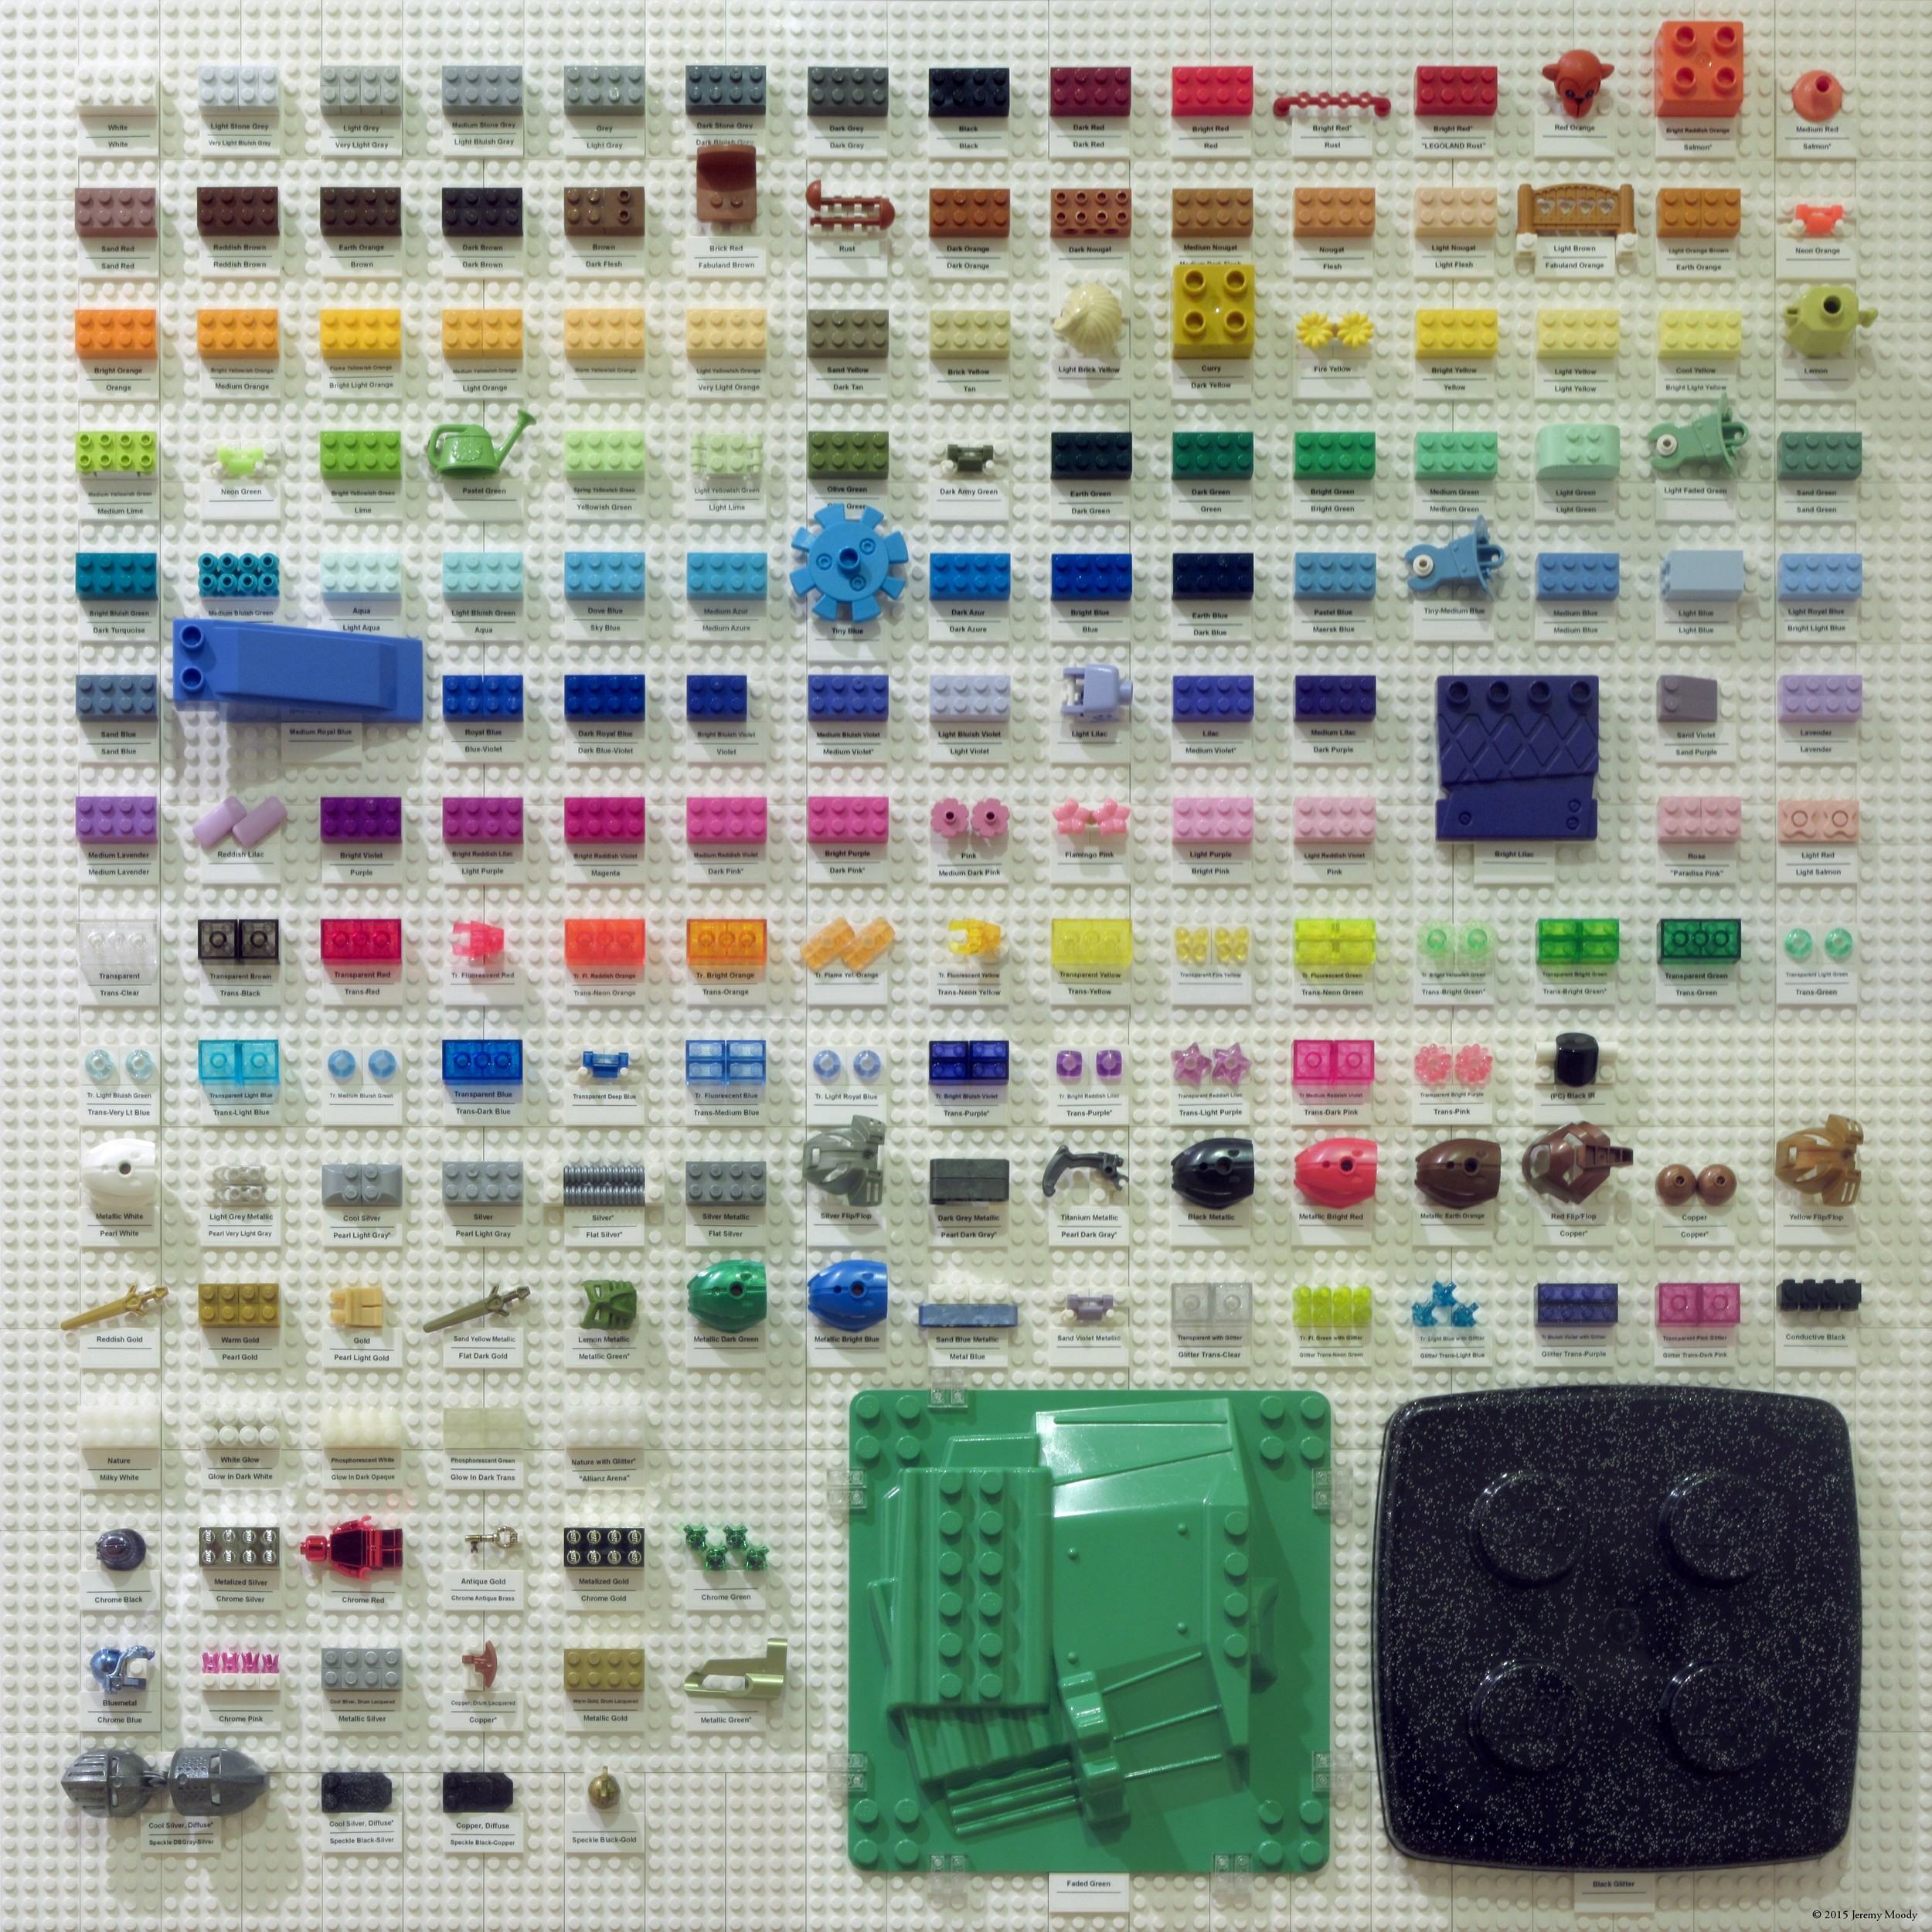 This is every color of Lego ever produced and placed into a chart by James Moody. There are 182 total.